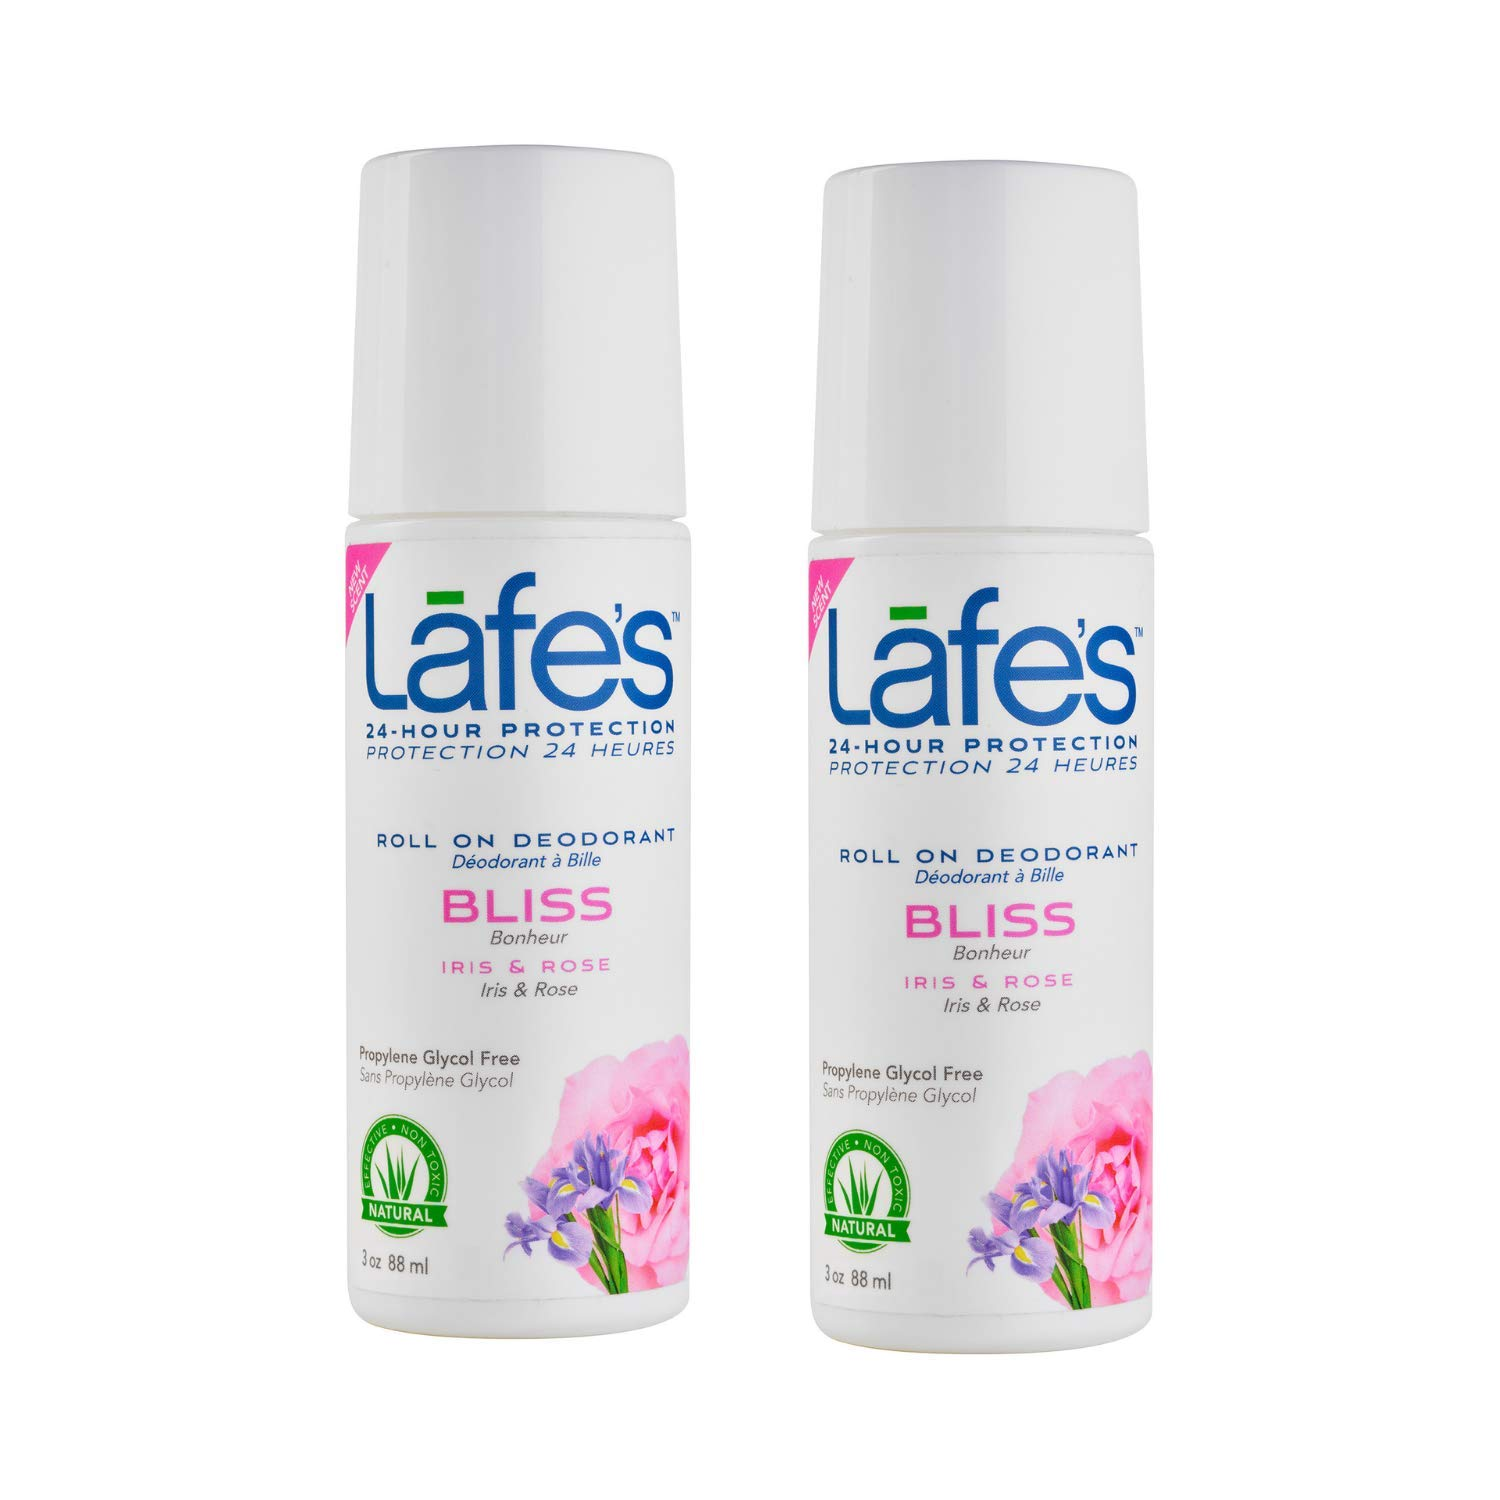 Lafe's | Bliss - Iris & Rose - Roll-On Aluminum Free Natural Deodorant for Women & Men | Vegan, Cruelty Free, Gluten Free, Paraben Free & Baking Soda Free with 24-Hour Protection; 2 Pack (3oz each)